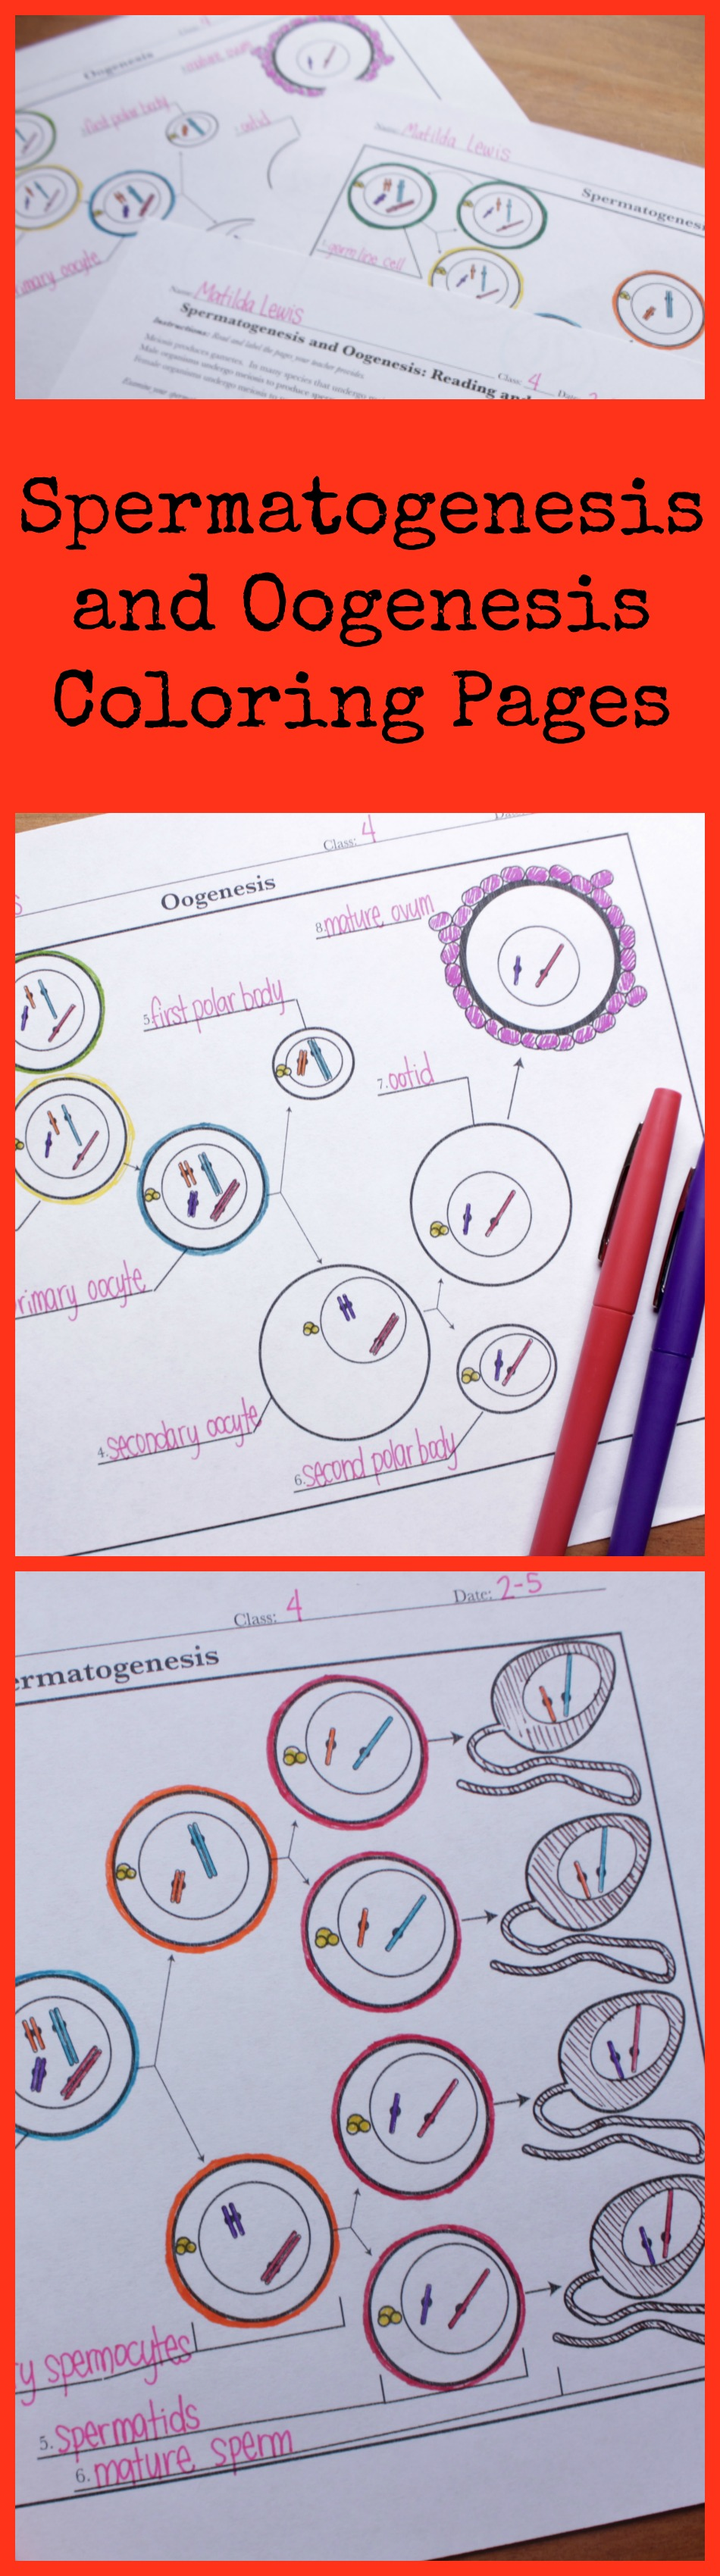 Spermatogenesis and oogenesis diagram activities high school love these spermatogenesis and oogenesis coloring pages for my high school biology class science with mrs lau ccuart Image collections